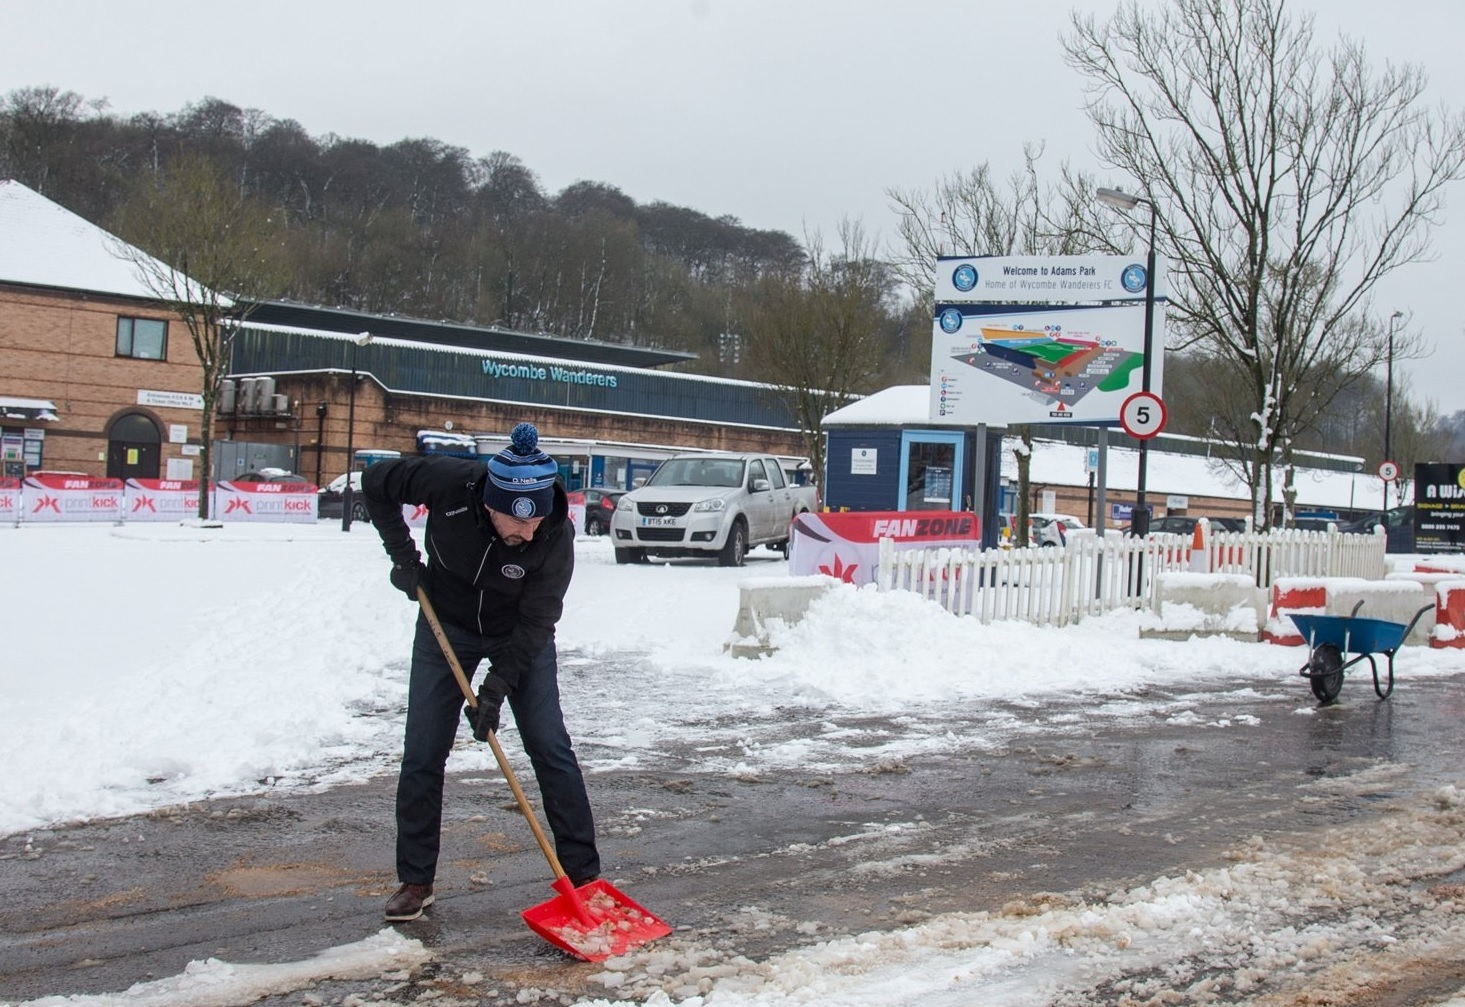 Wycombe Wanderers' general manager Michael Davies helps clear snow from around Adams Park today ahead of Bradford City's visit tomorrow. Picture: Wycombe Wanderers Twitter